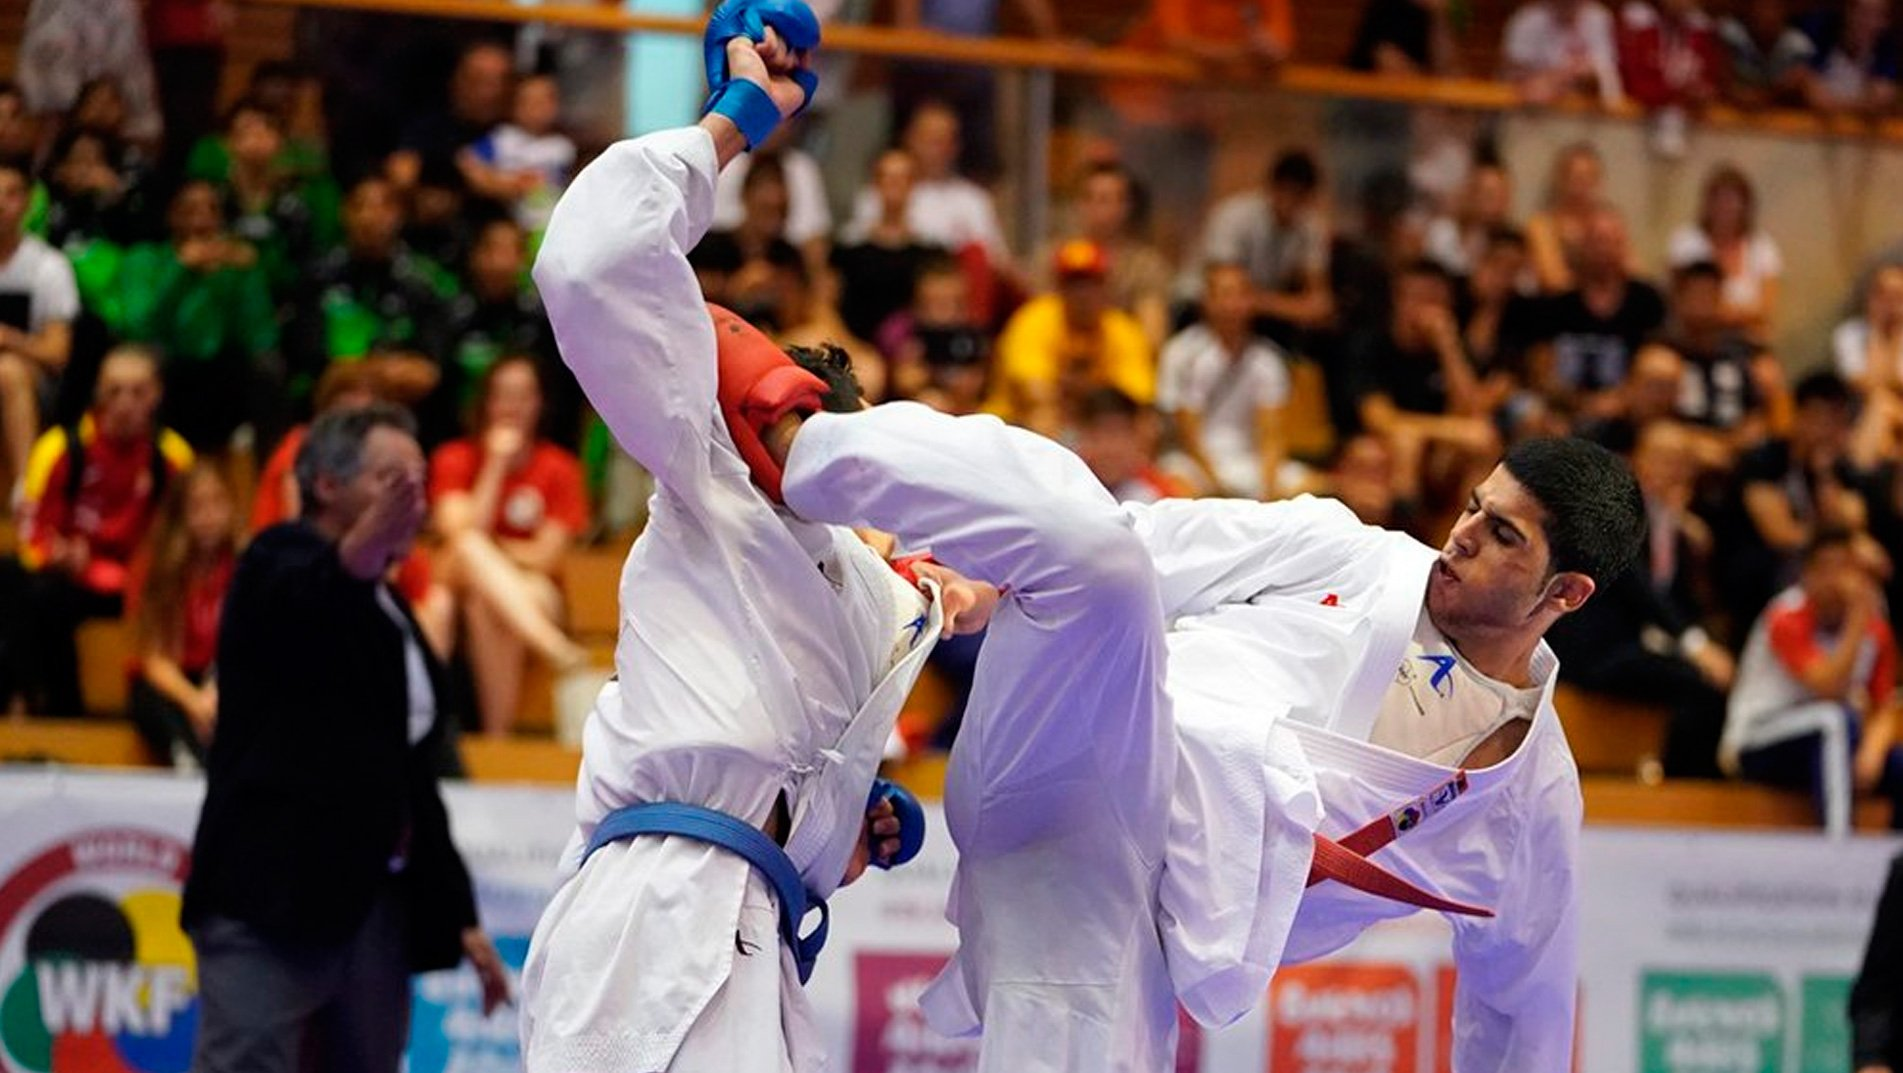 List of Karatekas for Buenos Aires 2018 confirmed